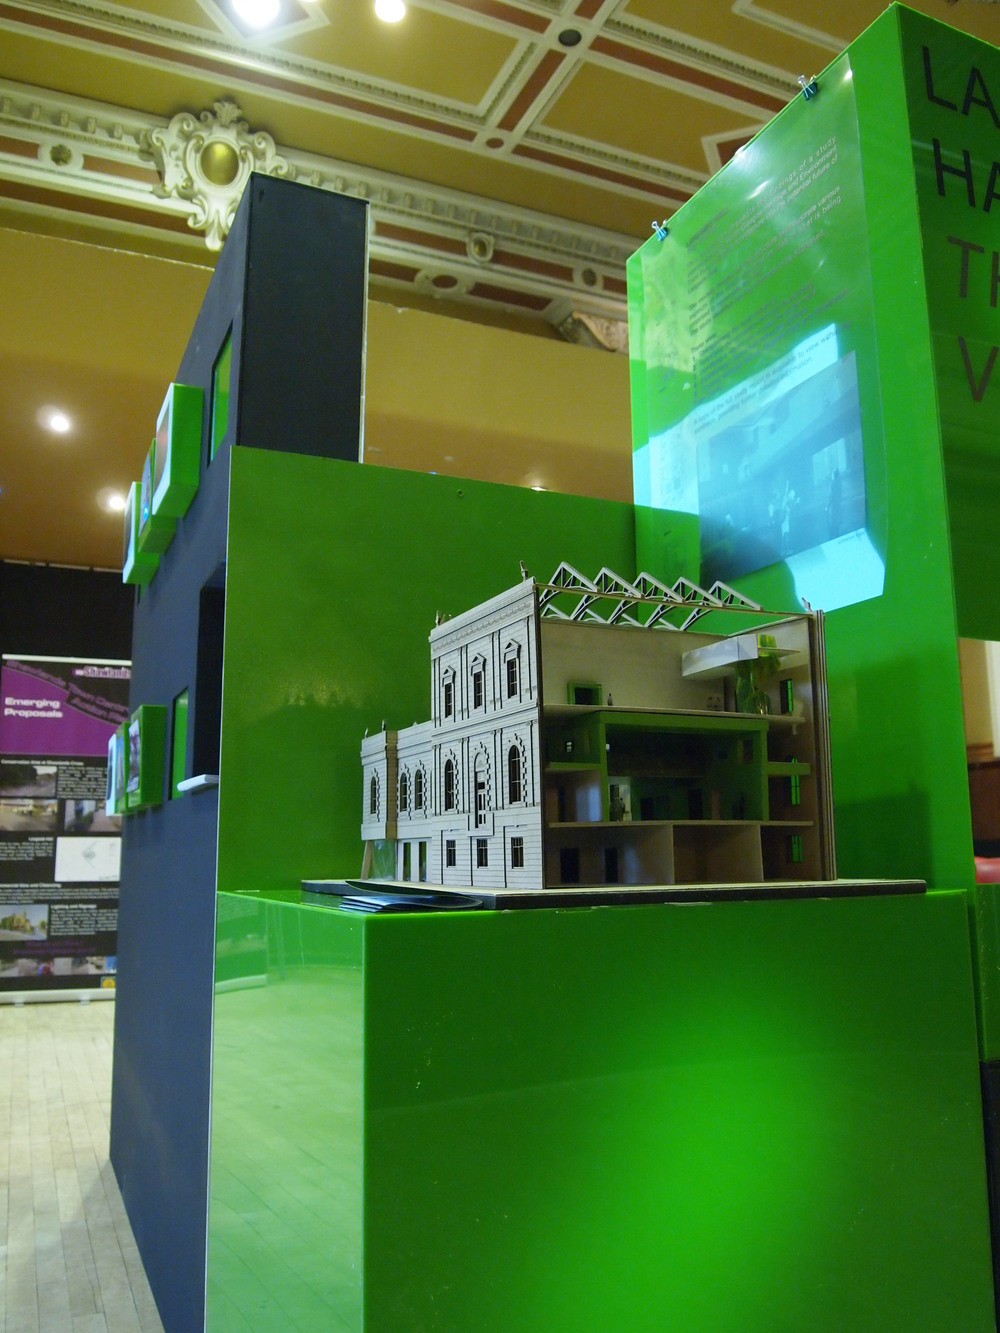 Laser cut model and acrylic and mdf display stand for public consultation event at Langside Hall, Glasgow for Collective Architecture.